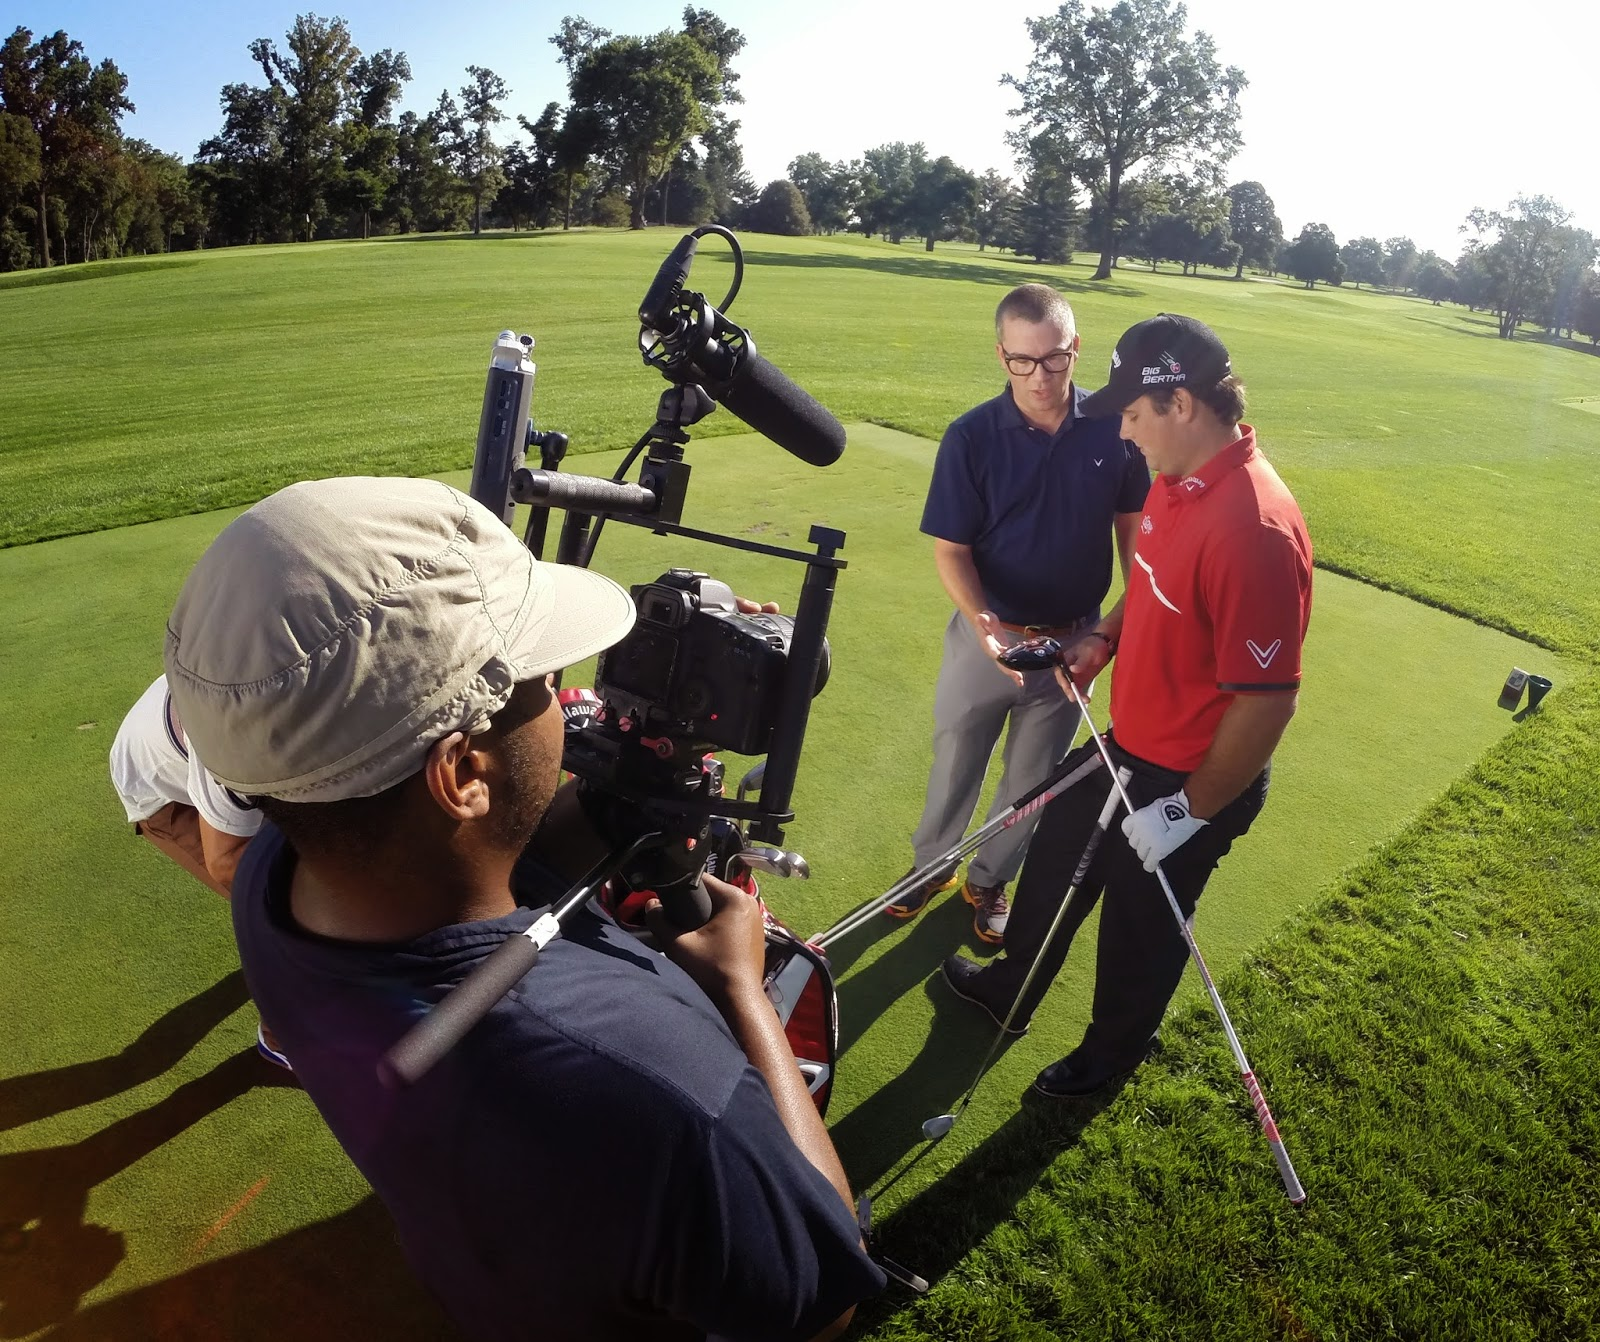 an executive summary of callaway golf Free essay: callaway golf company executive summary established in 1982, callaway golf company is a leader in the golf equipment industry, creating some of.